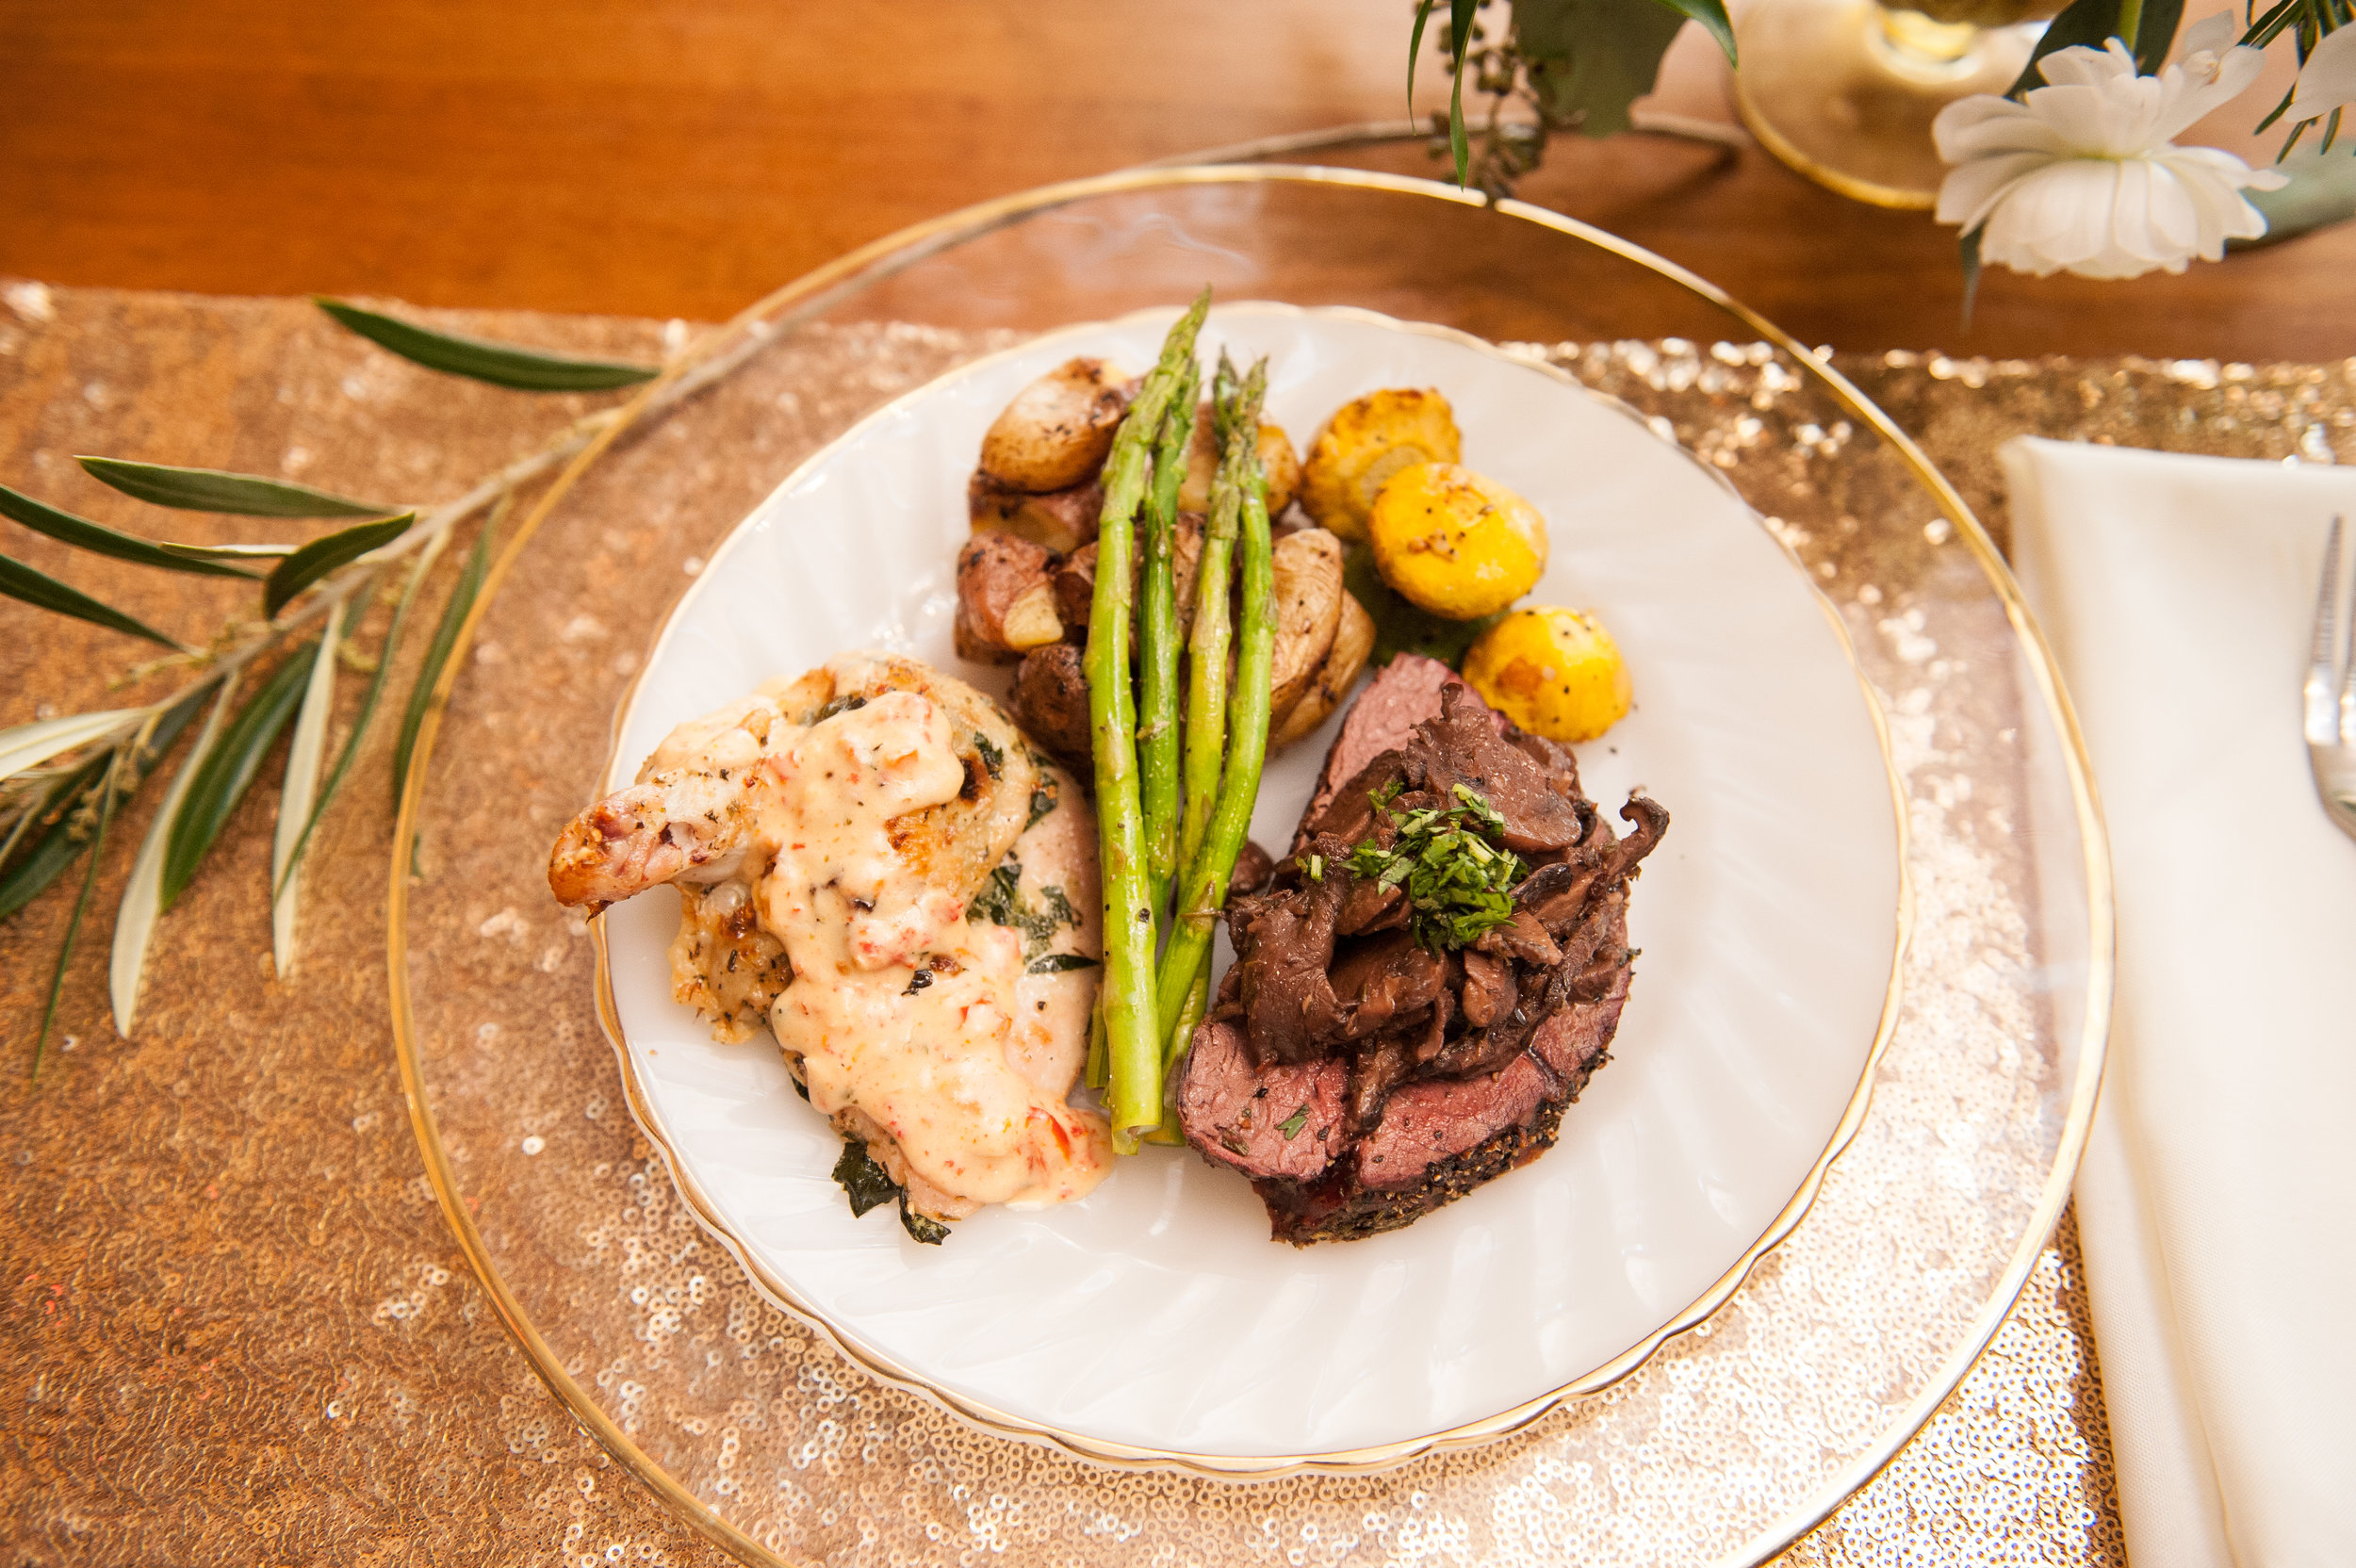 Beef tenderloin, sautéed asparagus, roasted chicken with garlic cream sauce, roasted squash